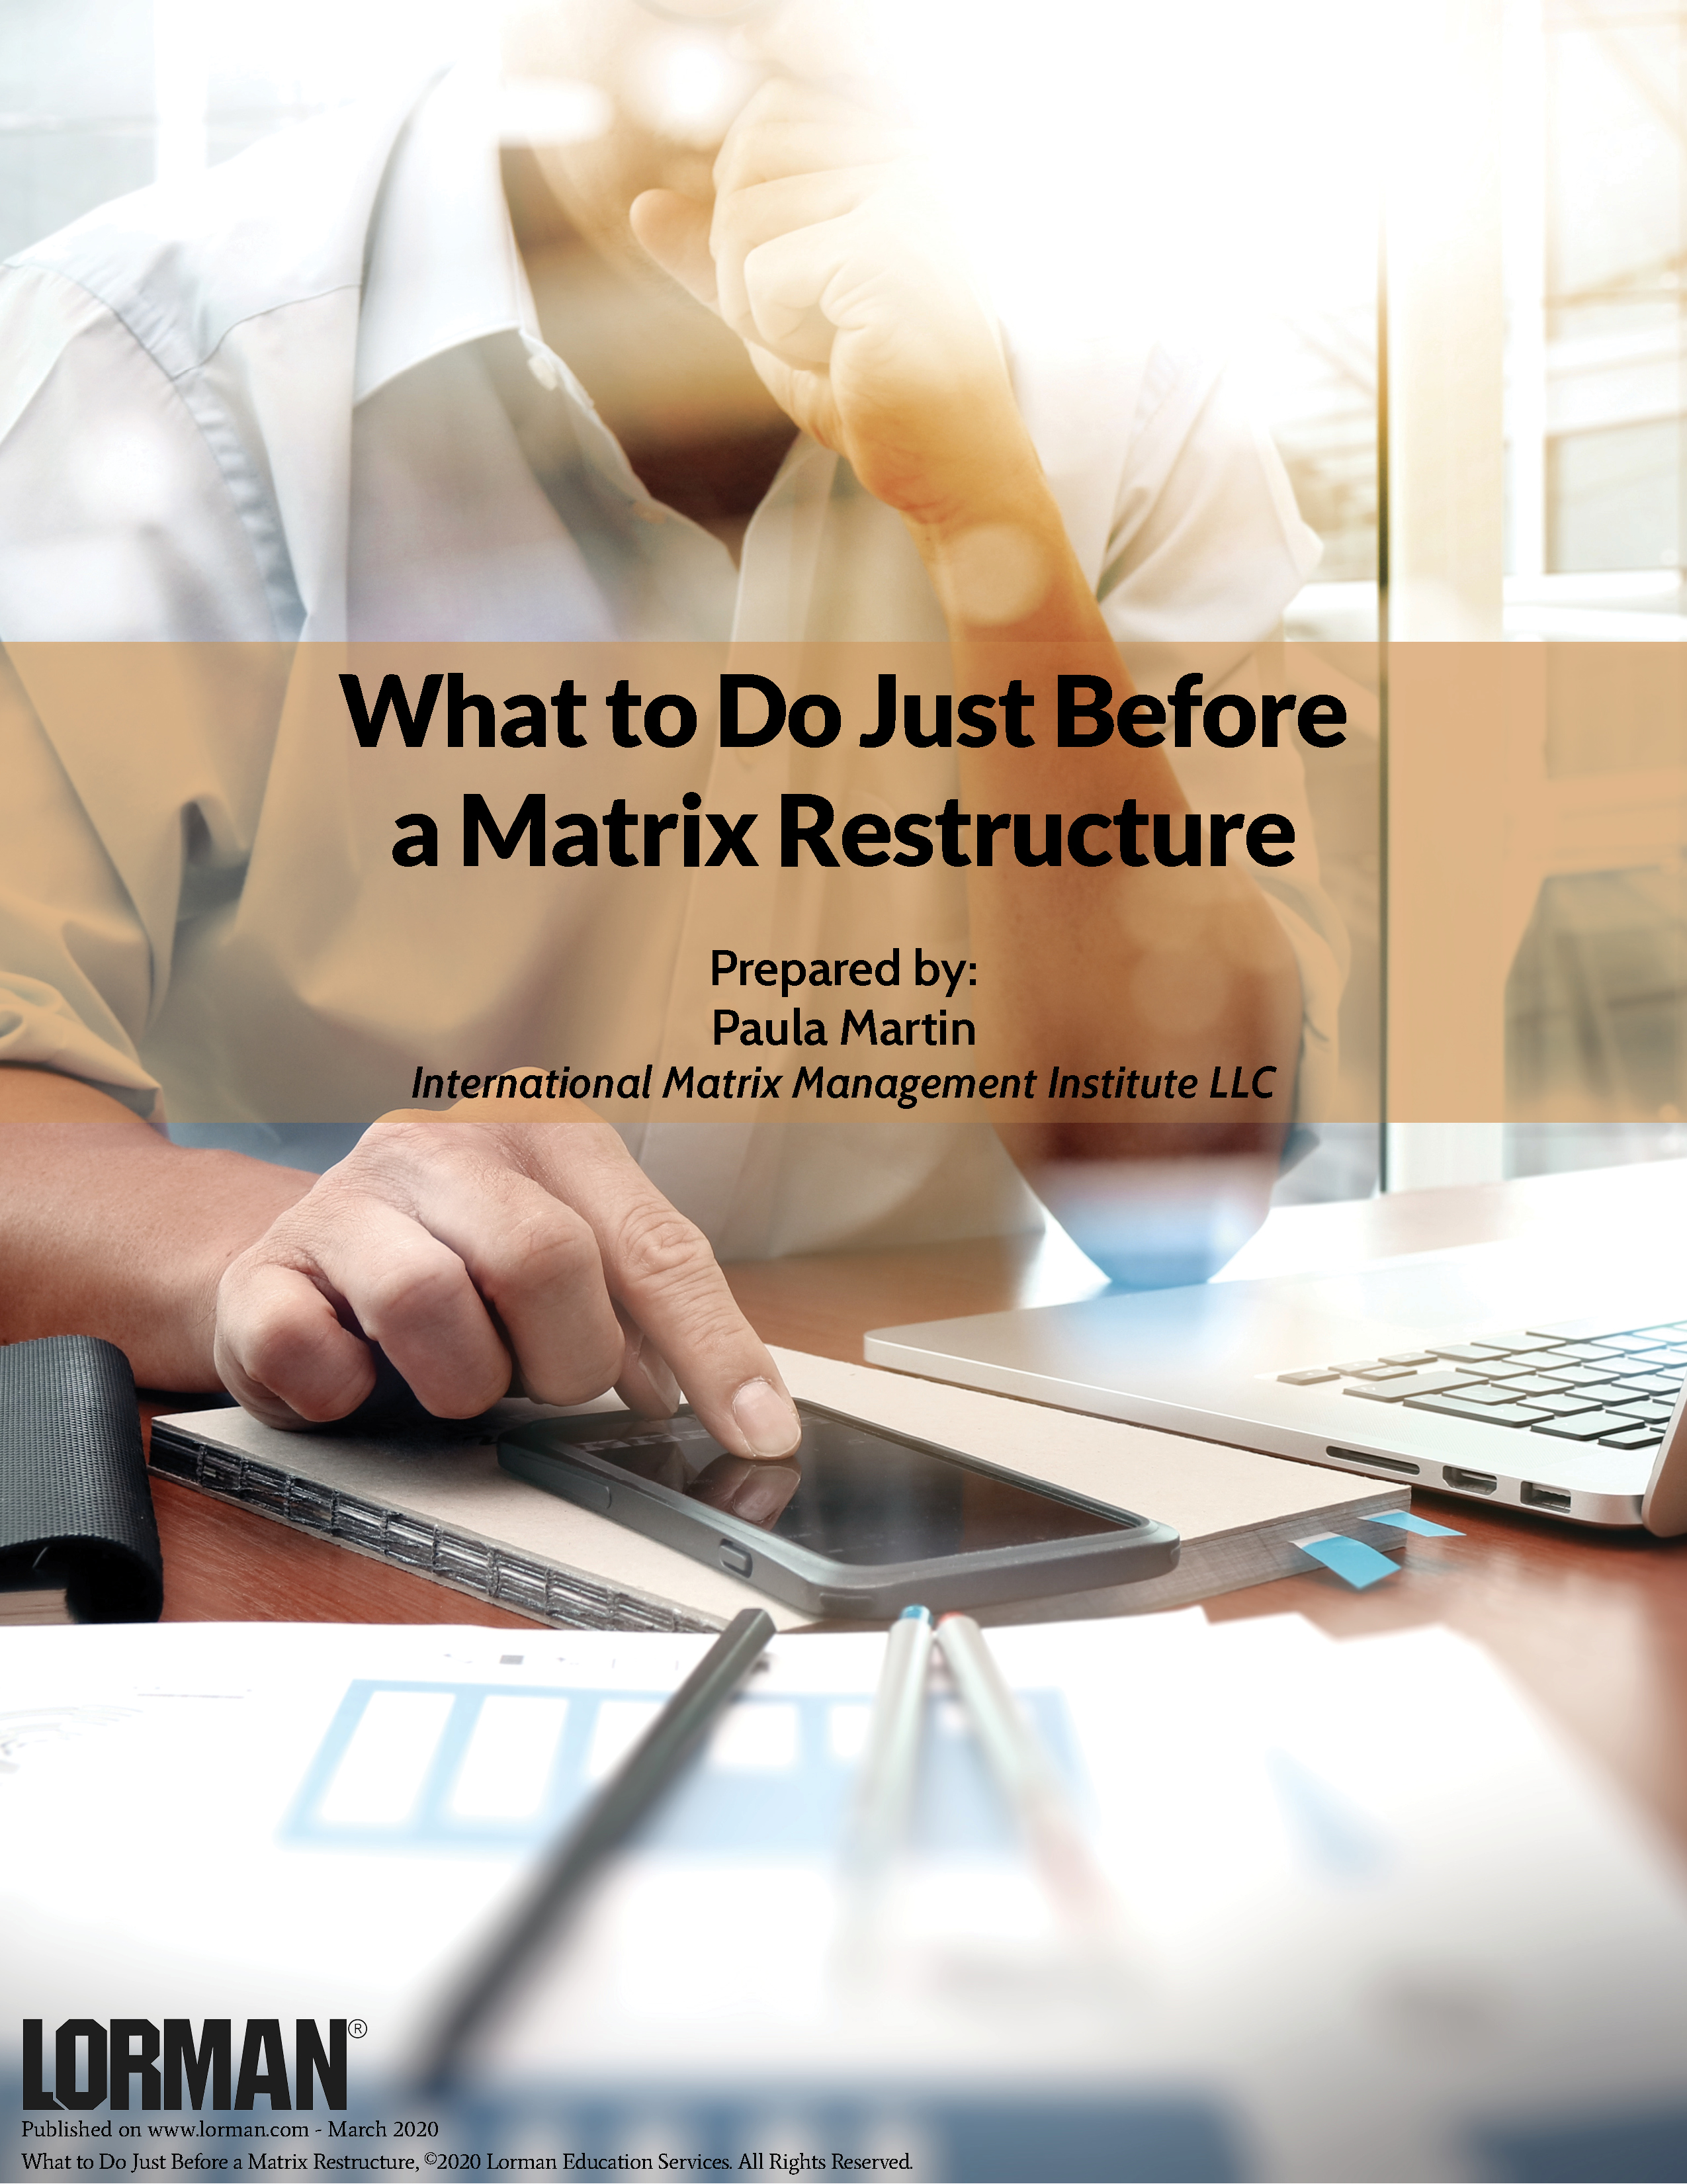 What to Do Just Before a Matrix Restructure